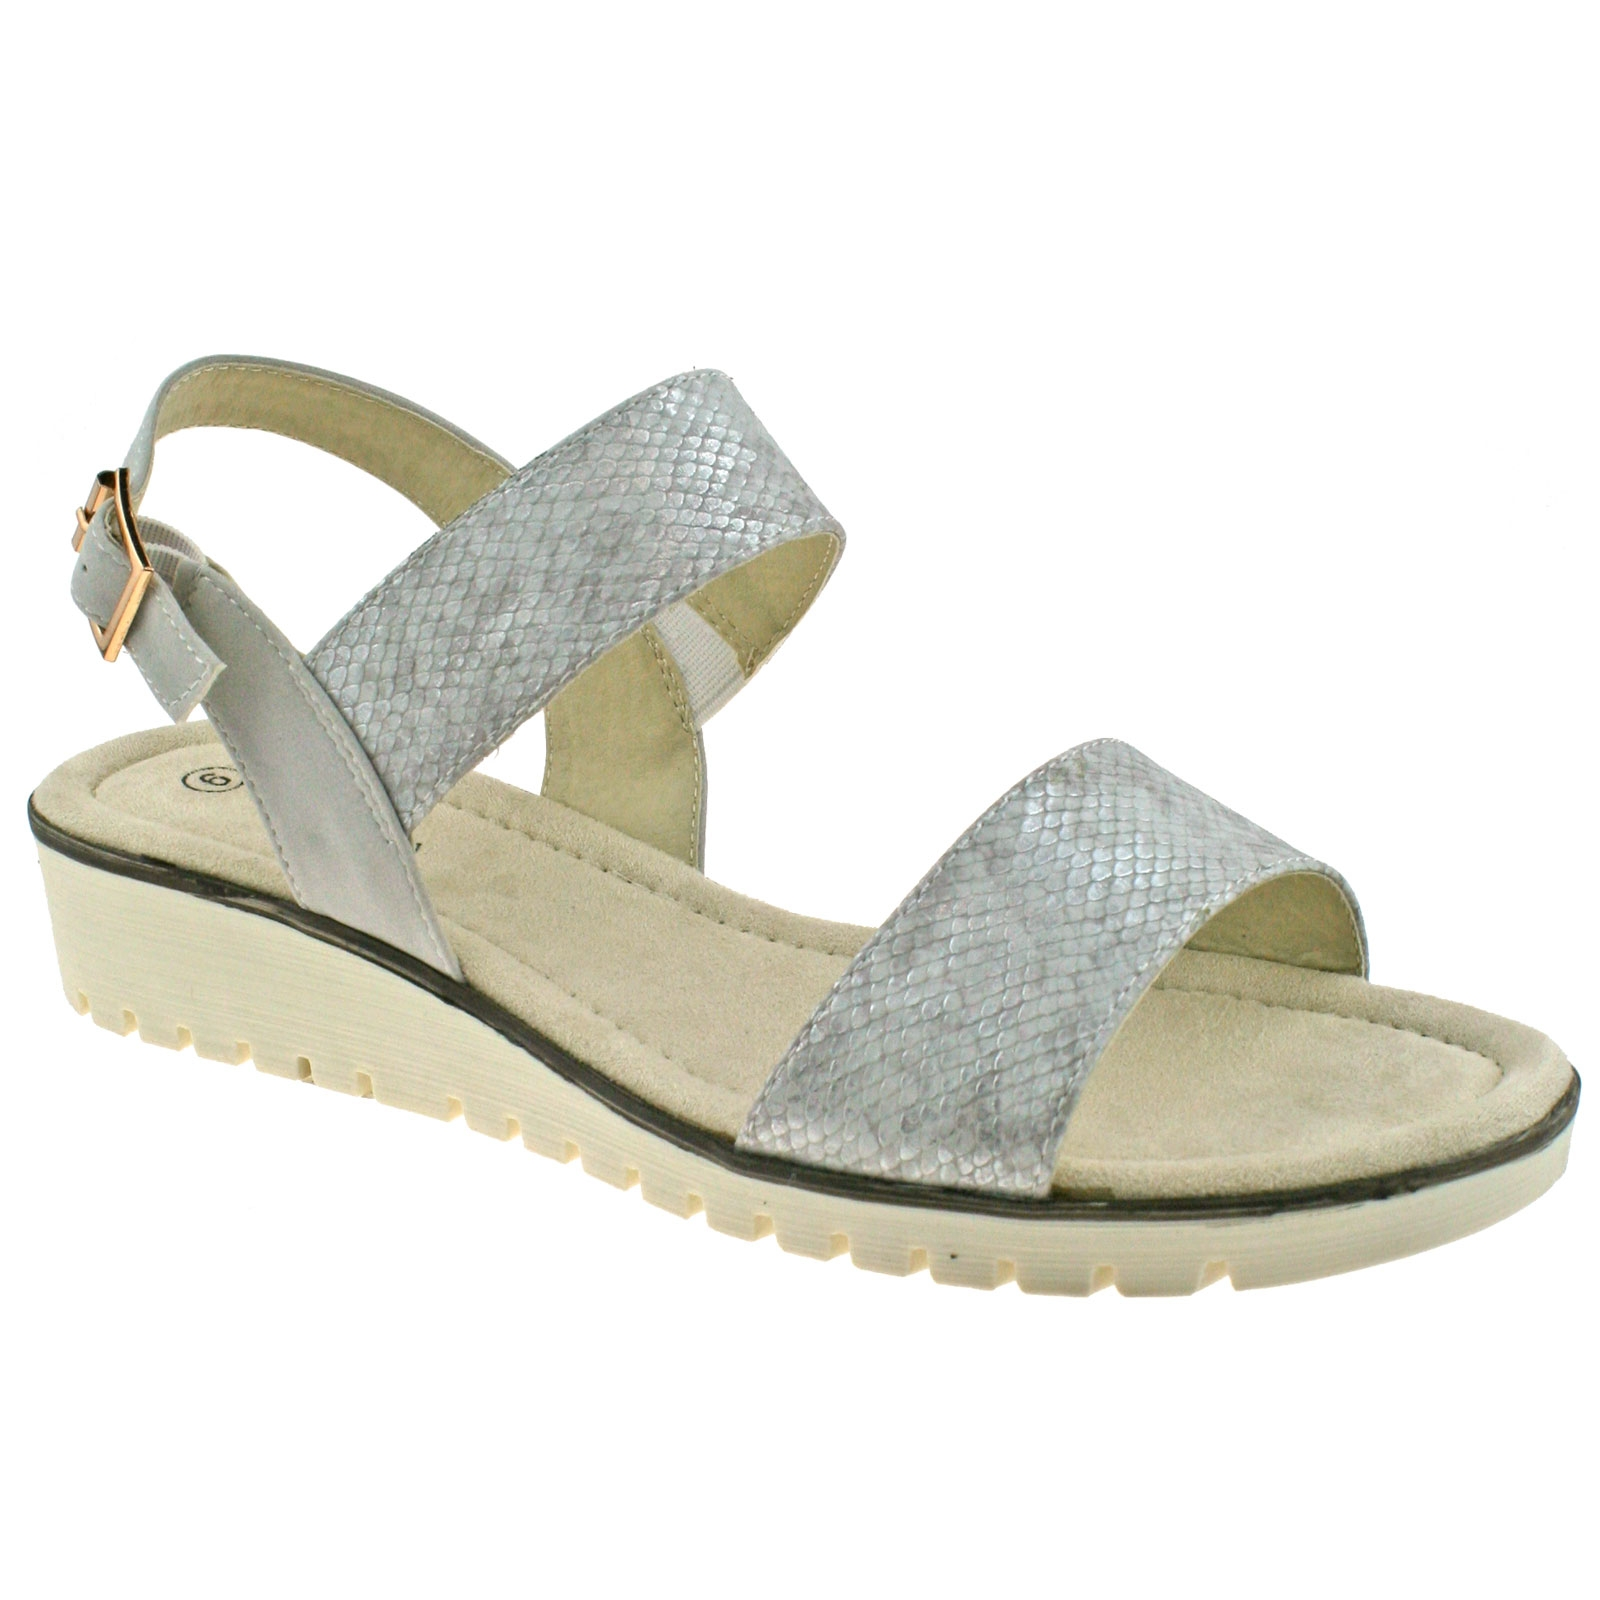 a343b705be LADIES CIPRIATA GOLD OR SILVER SHIMMER BUCKLE LOW WEDGE HEELED ...